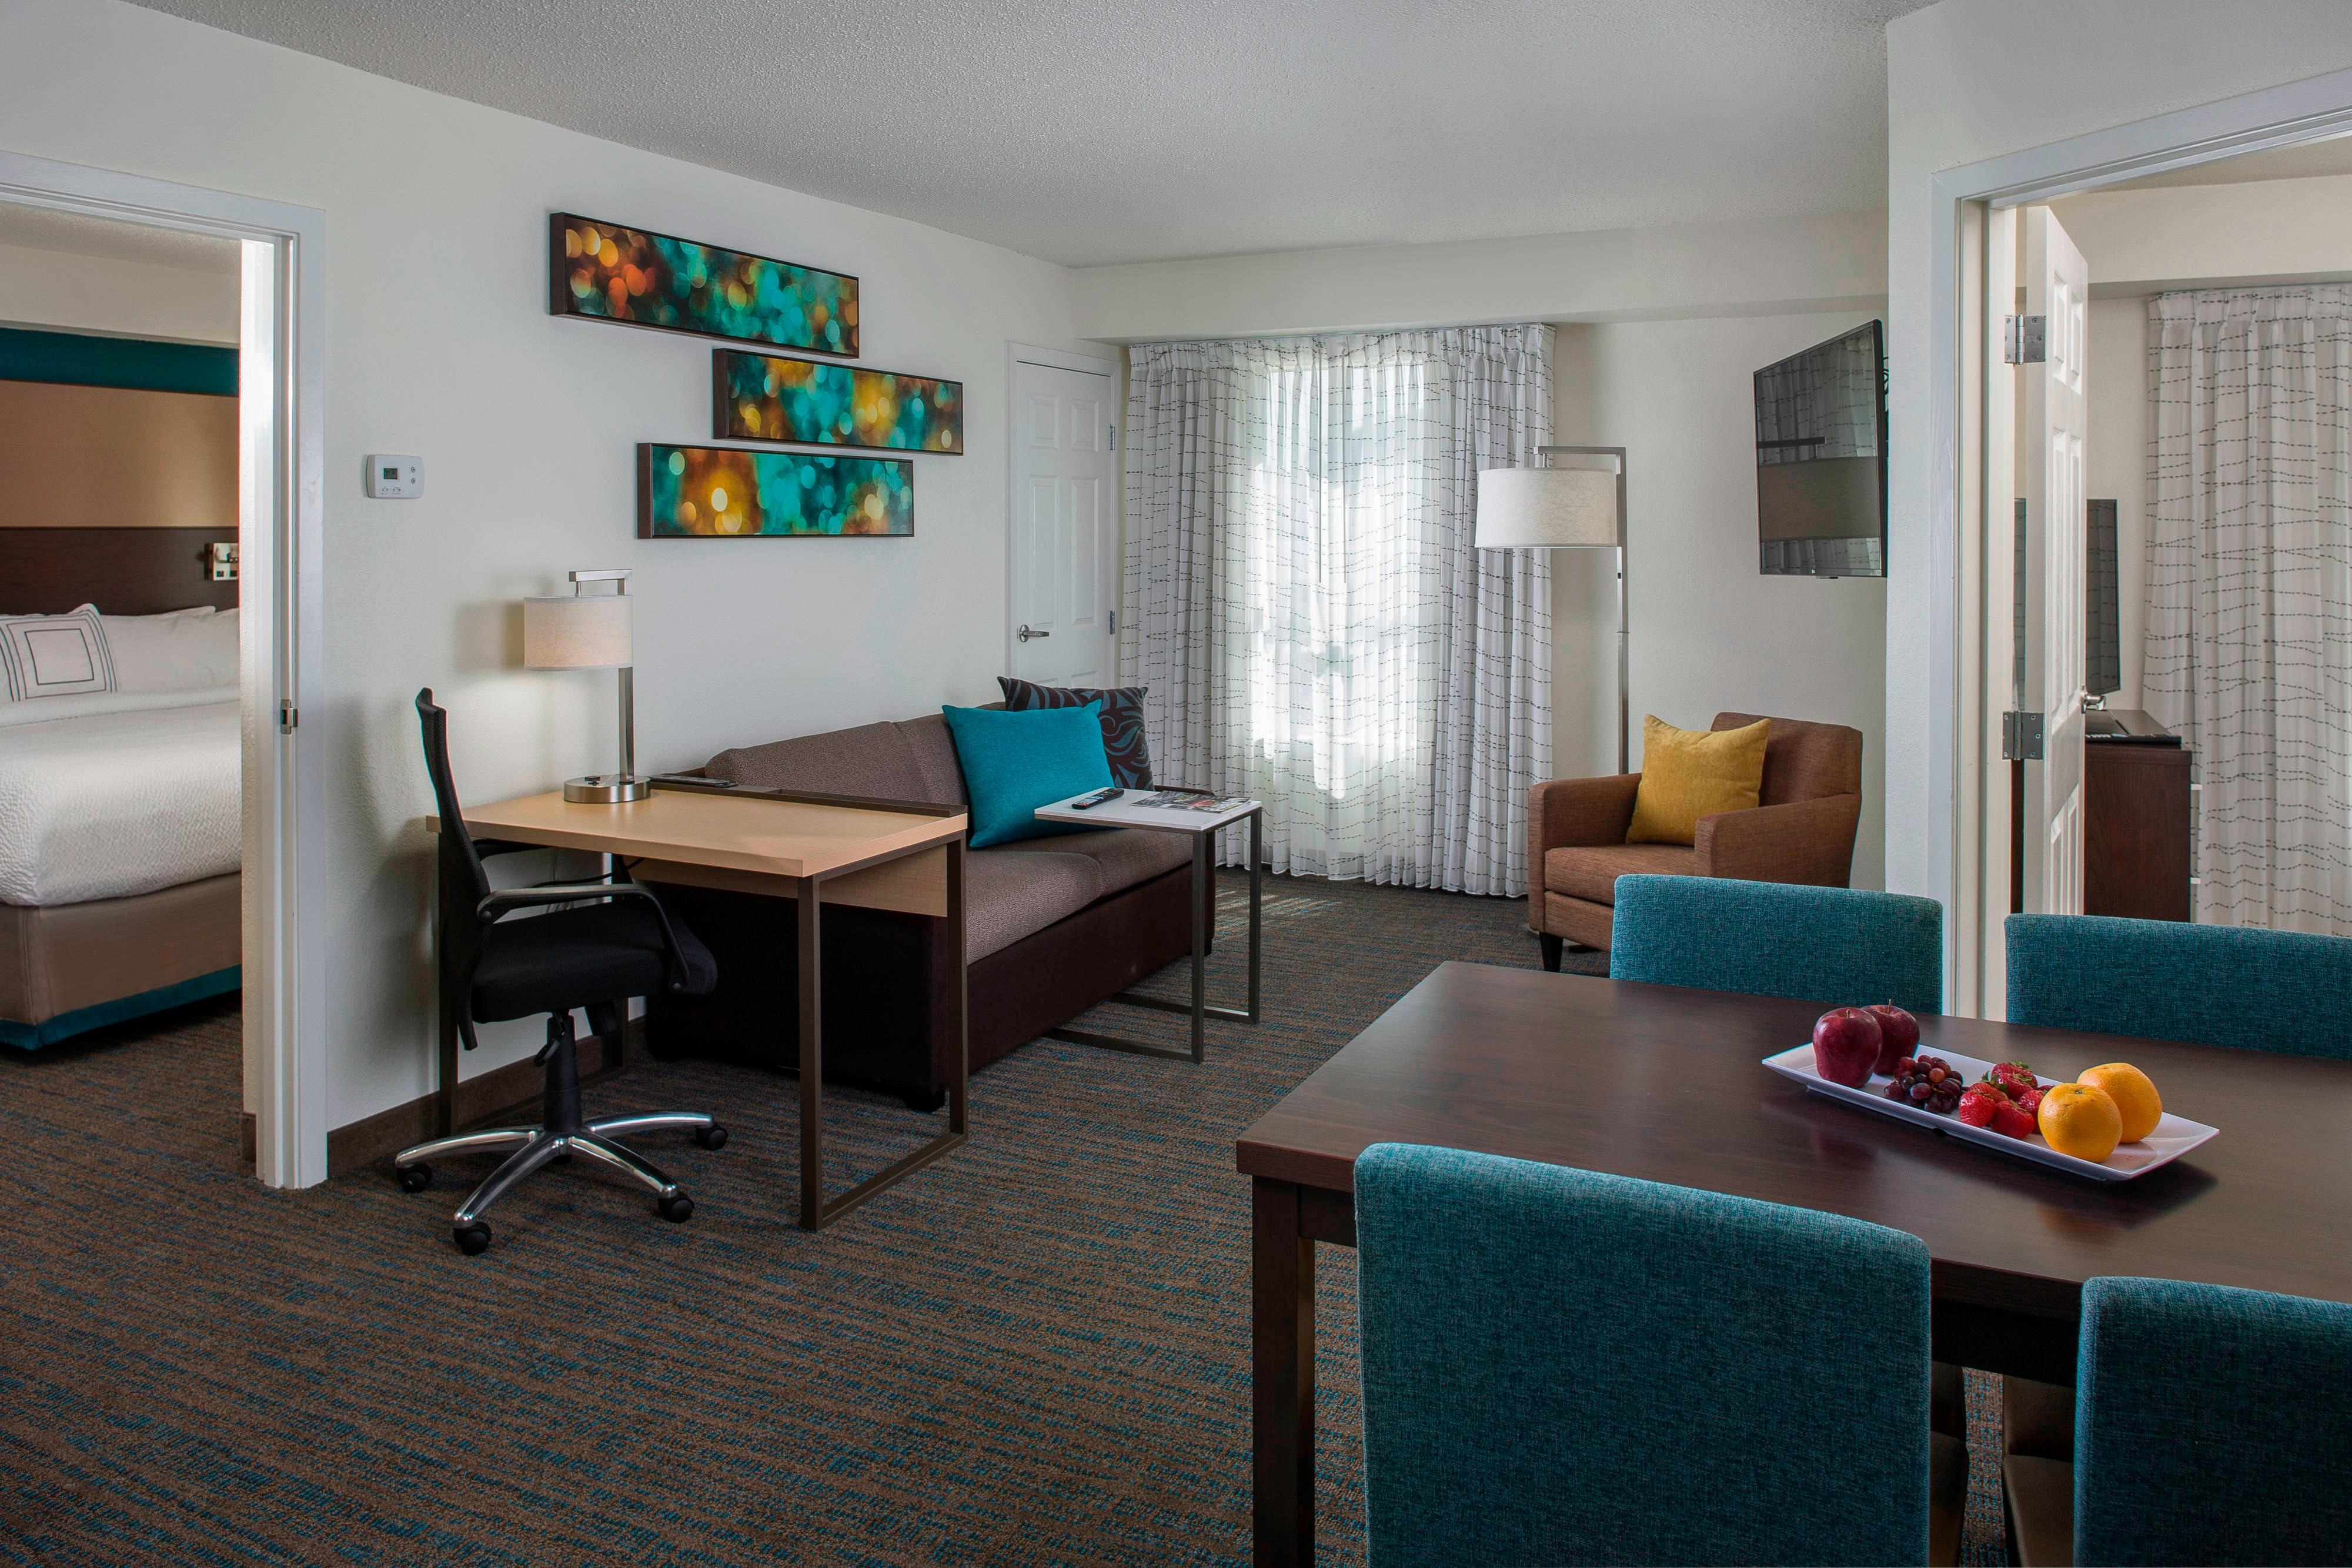 residence hotels inn rooms suite hotel hor in bedroom virginia new chori orleans suites charlottesville clsc